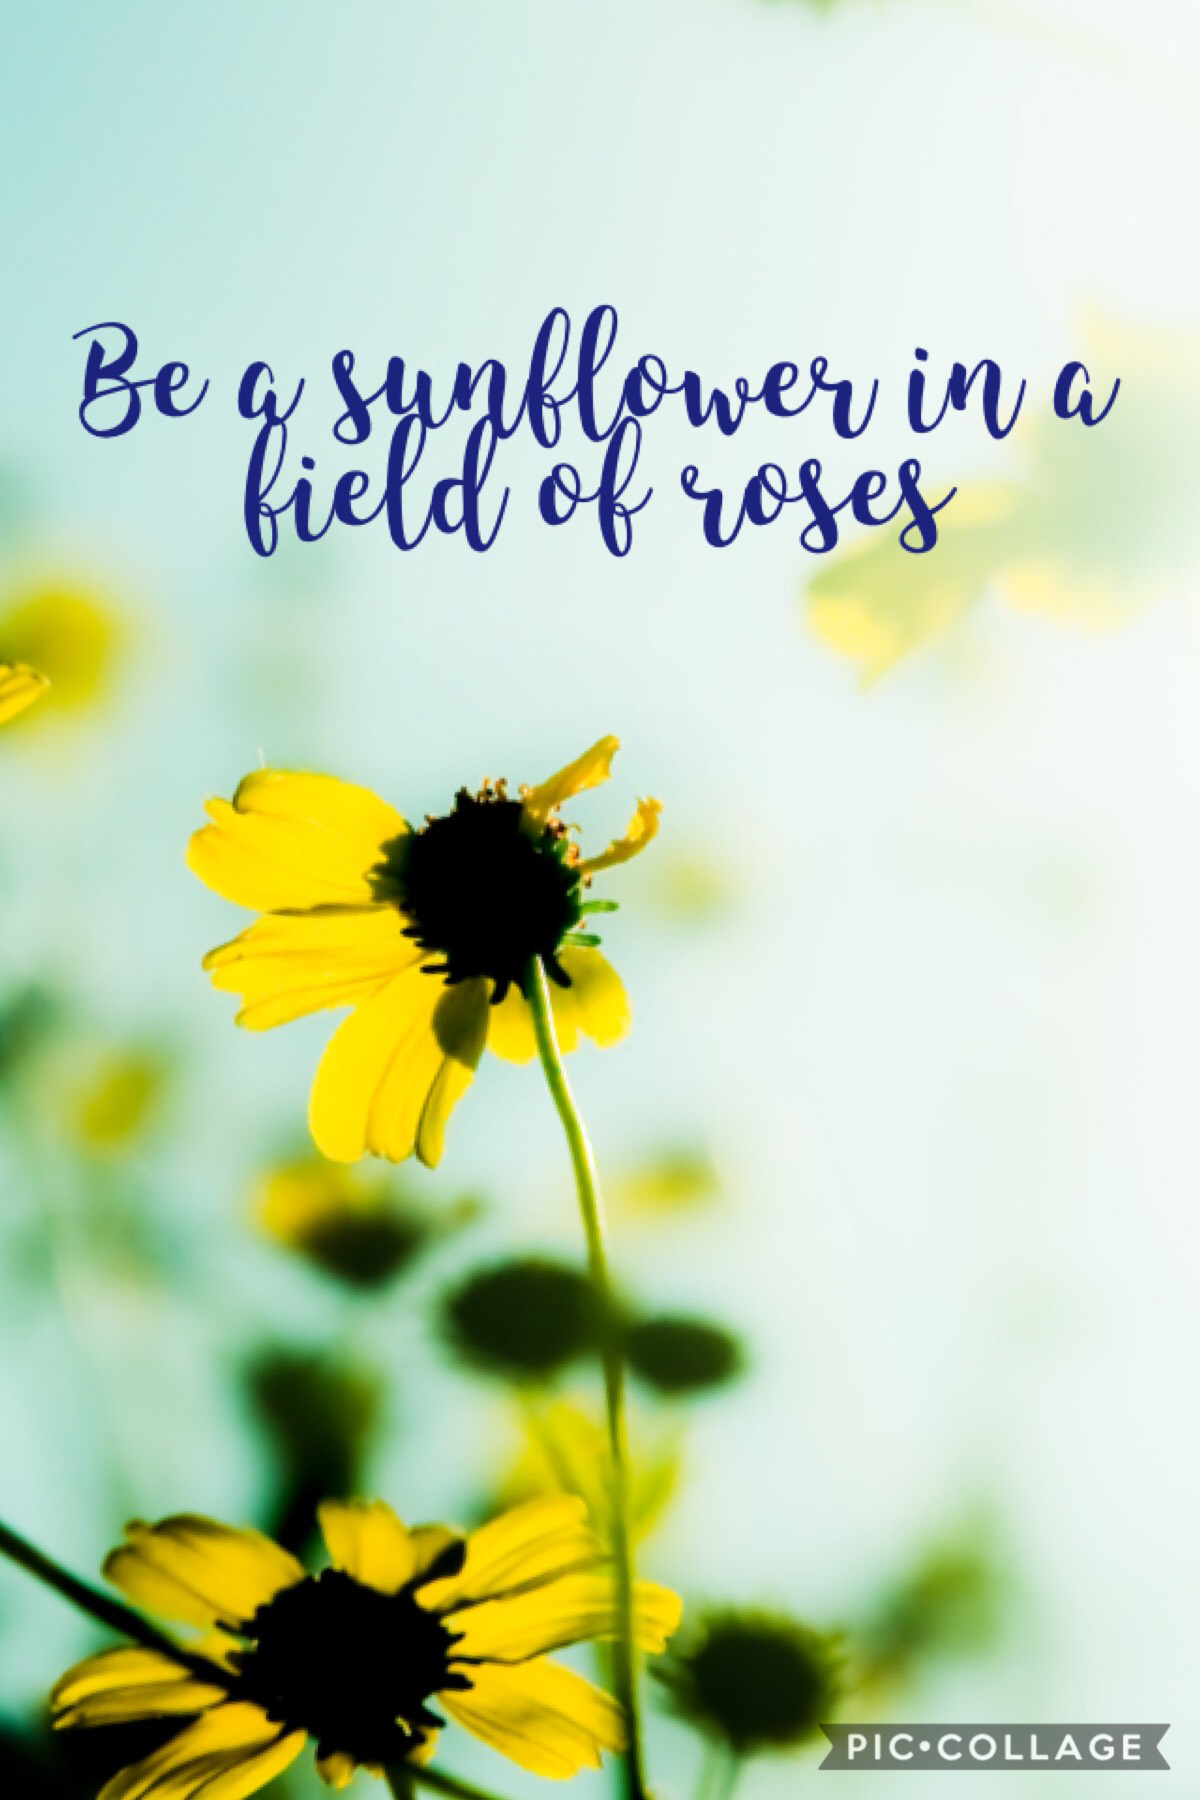 What is your favorite flower? Mine is a sunflower